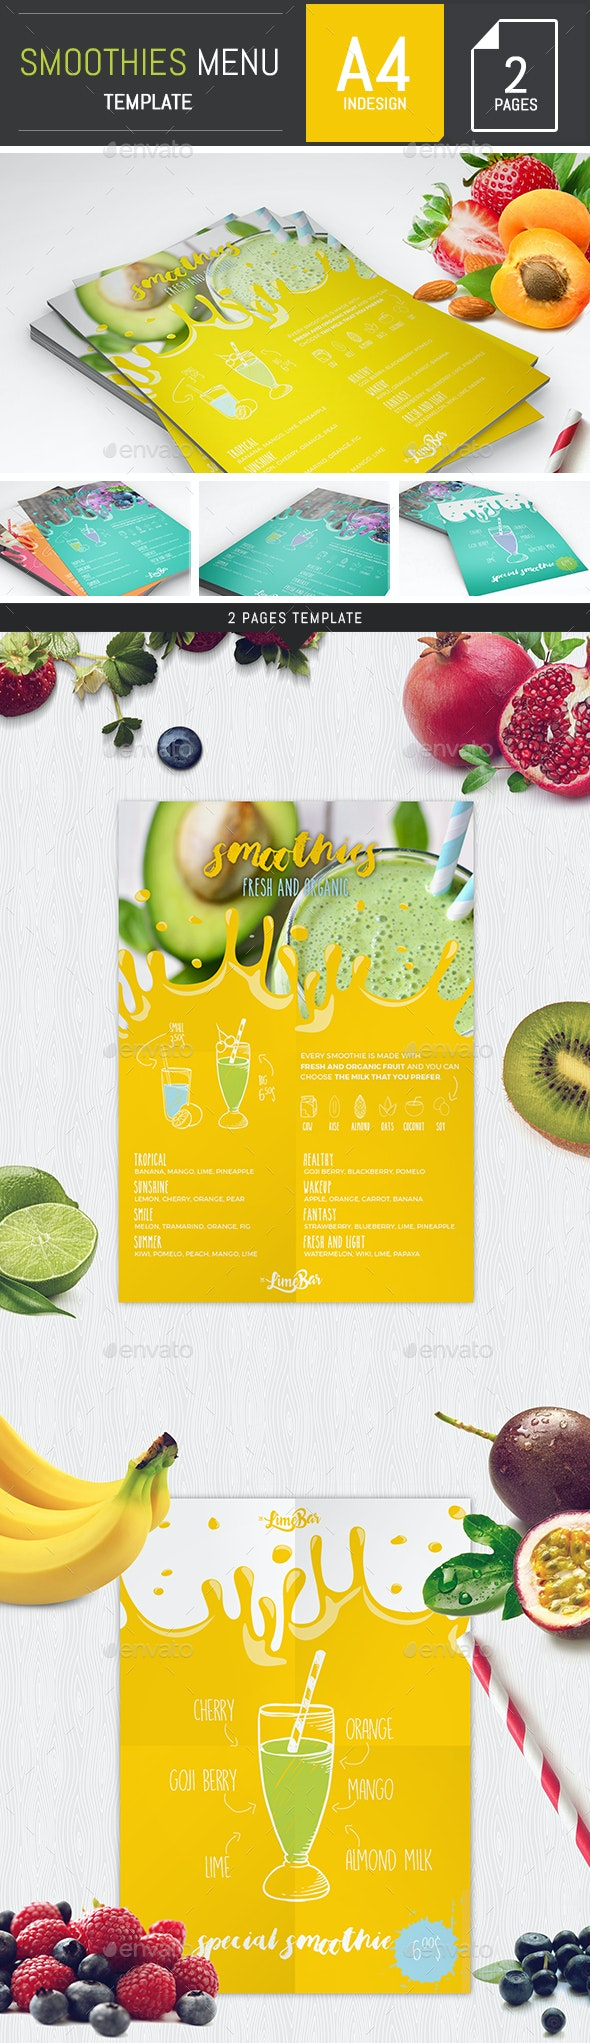 Smoothies Menu Template - Food Menus Print Templates